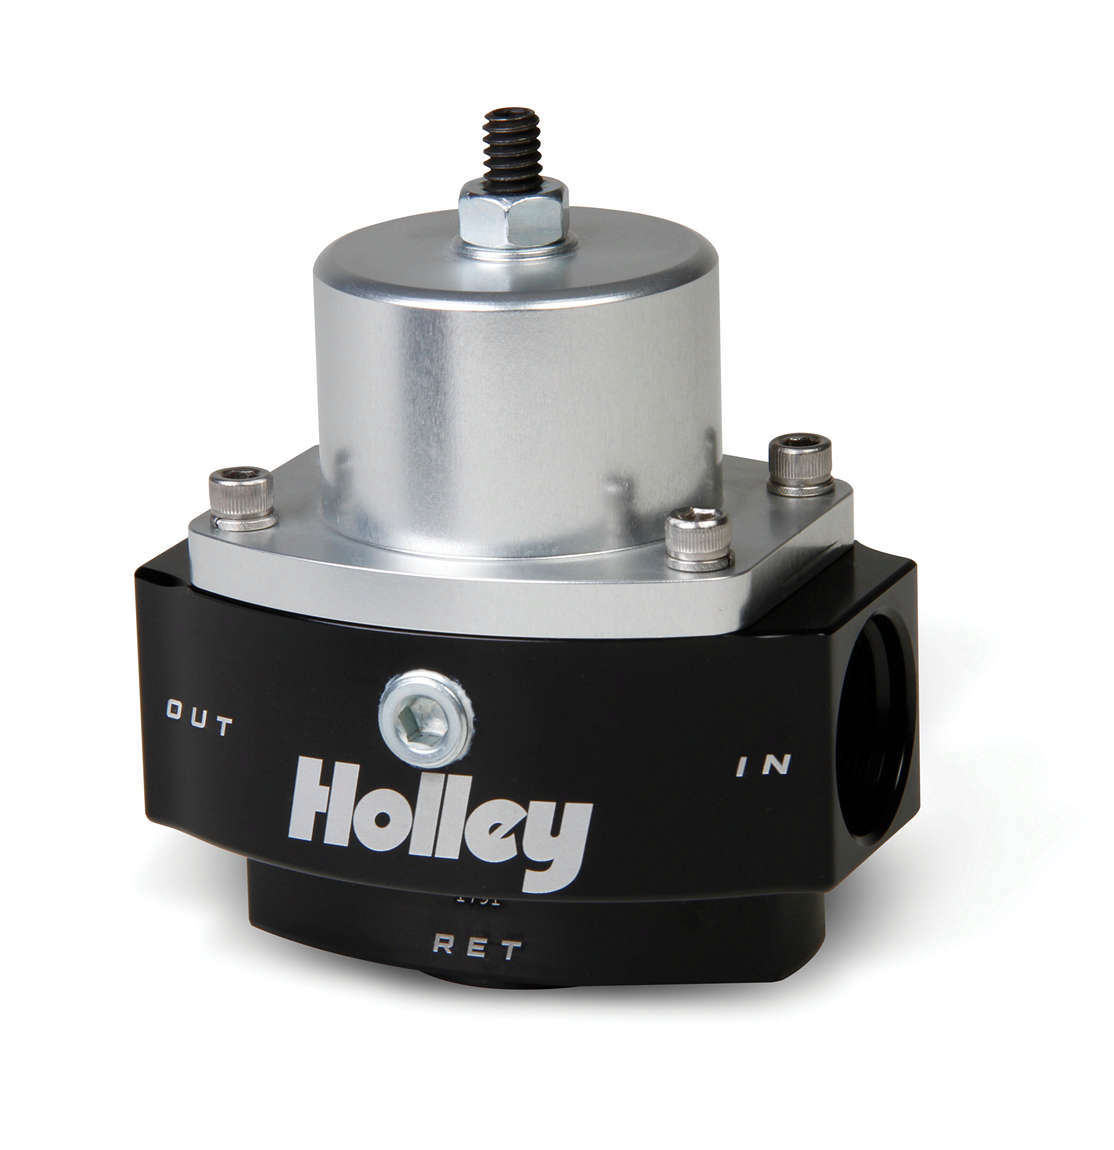 Holley 12-847 Fuel Pressure Regulator, Dominator Billet, 4.5 to 9 psi, In-Line, 10 AN Female O-Ring Inlet, 10 AN Female O-Ring Outlet, 8 AN O-Ring Return, 1/8 in NPT Port, Bypass, Aluminum, Black / Clear Anodized, Diesel / E85 / Gas, Each